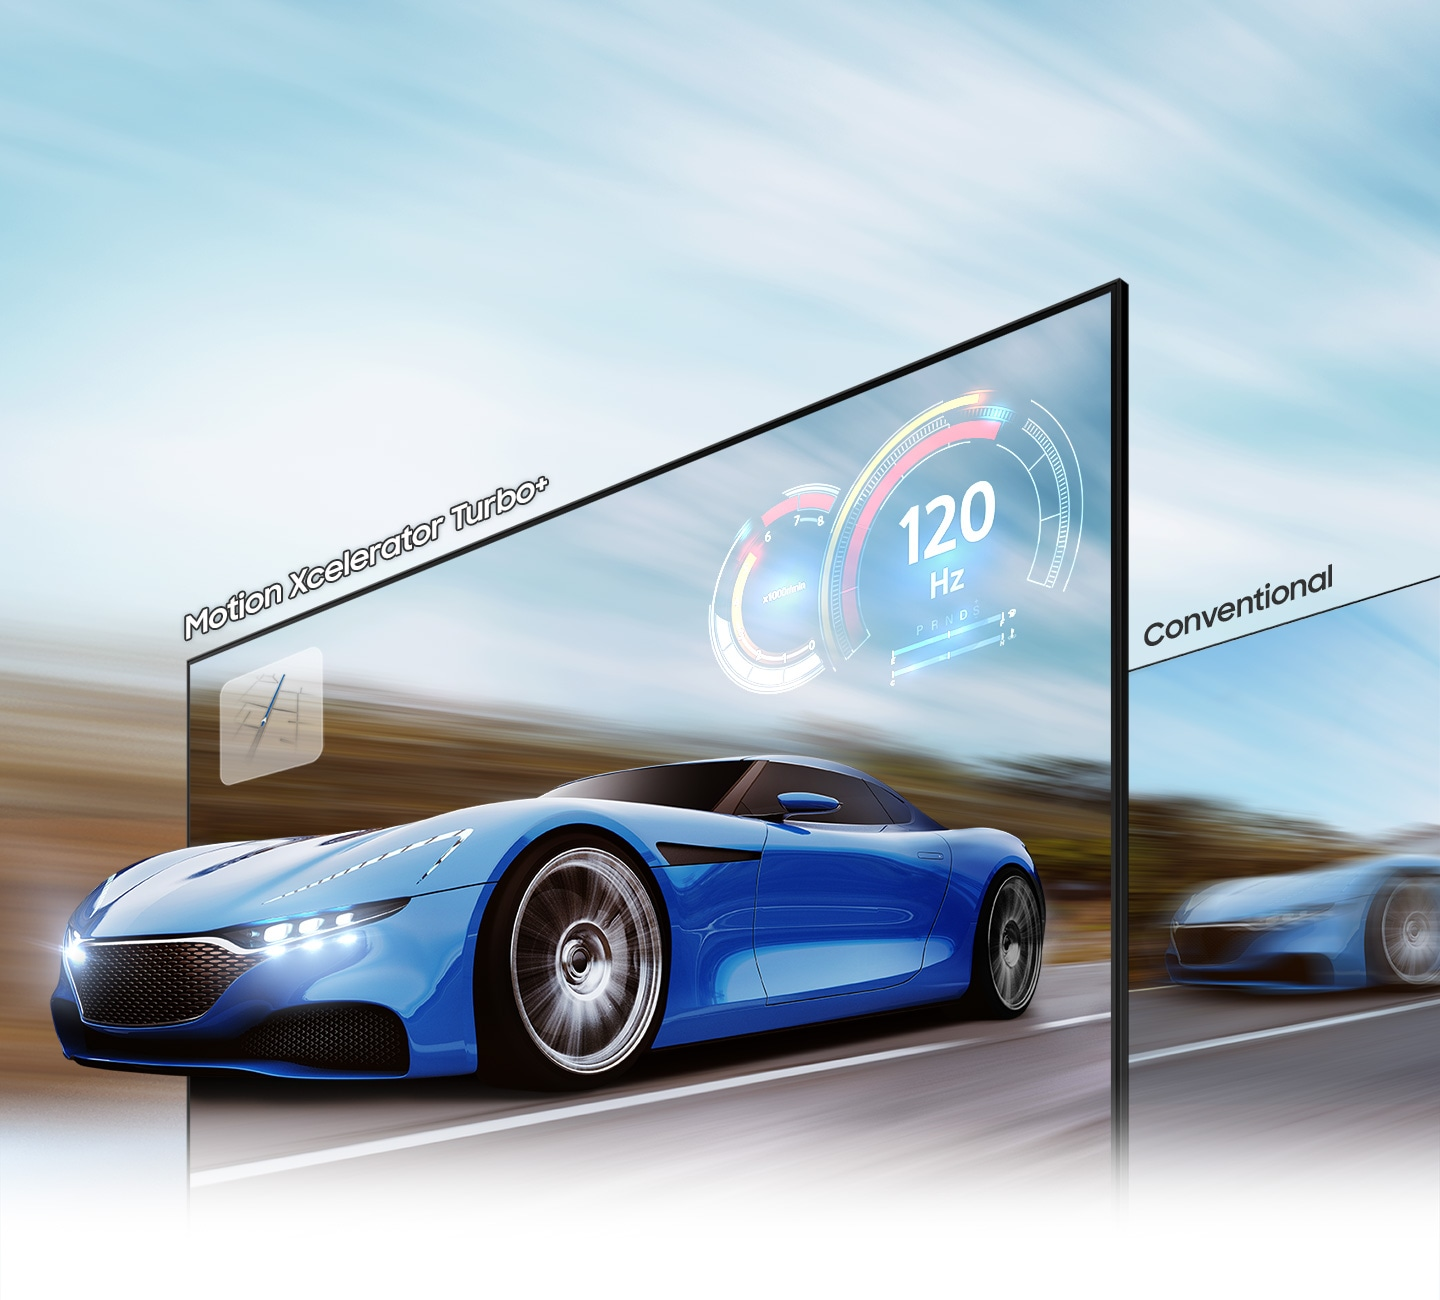 A racing car on the TV screen looks clearer and more visible on the QLED TV than on conventional TV due to motion xcelerator turbo+ technology up to 4K 120Hz.